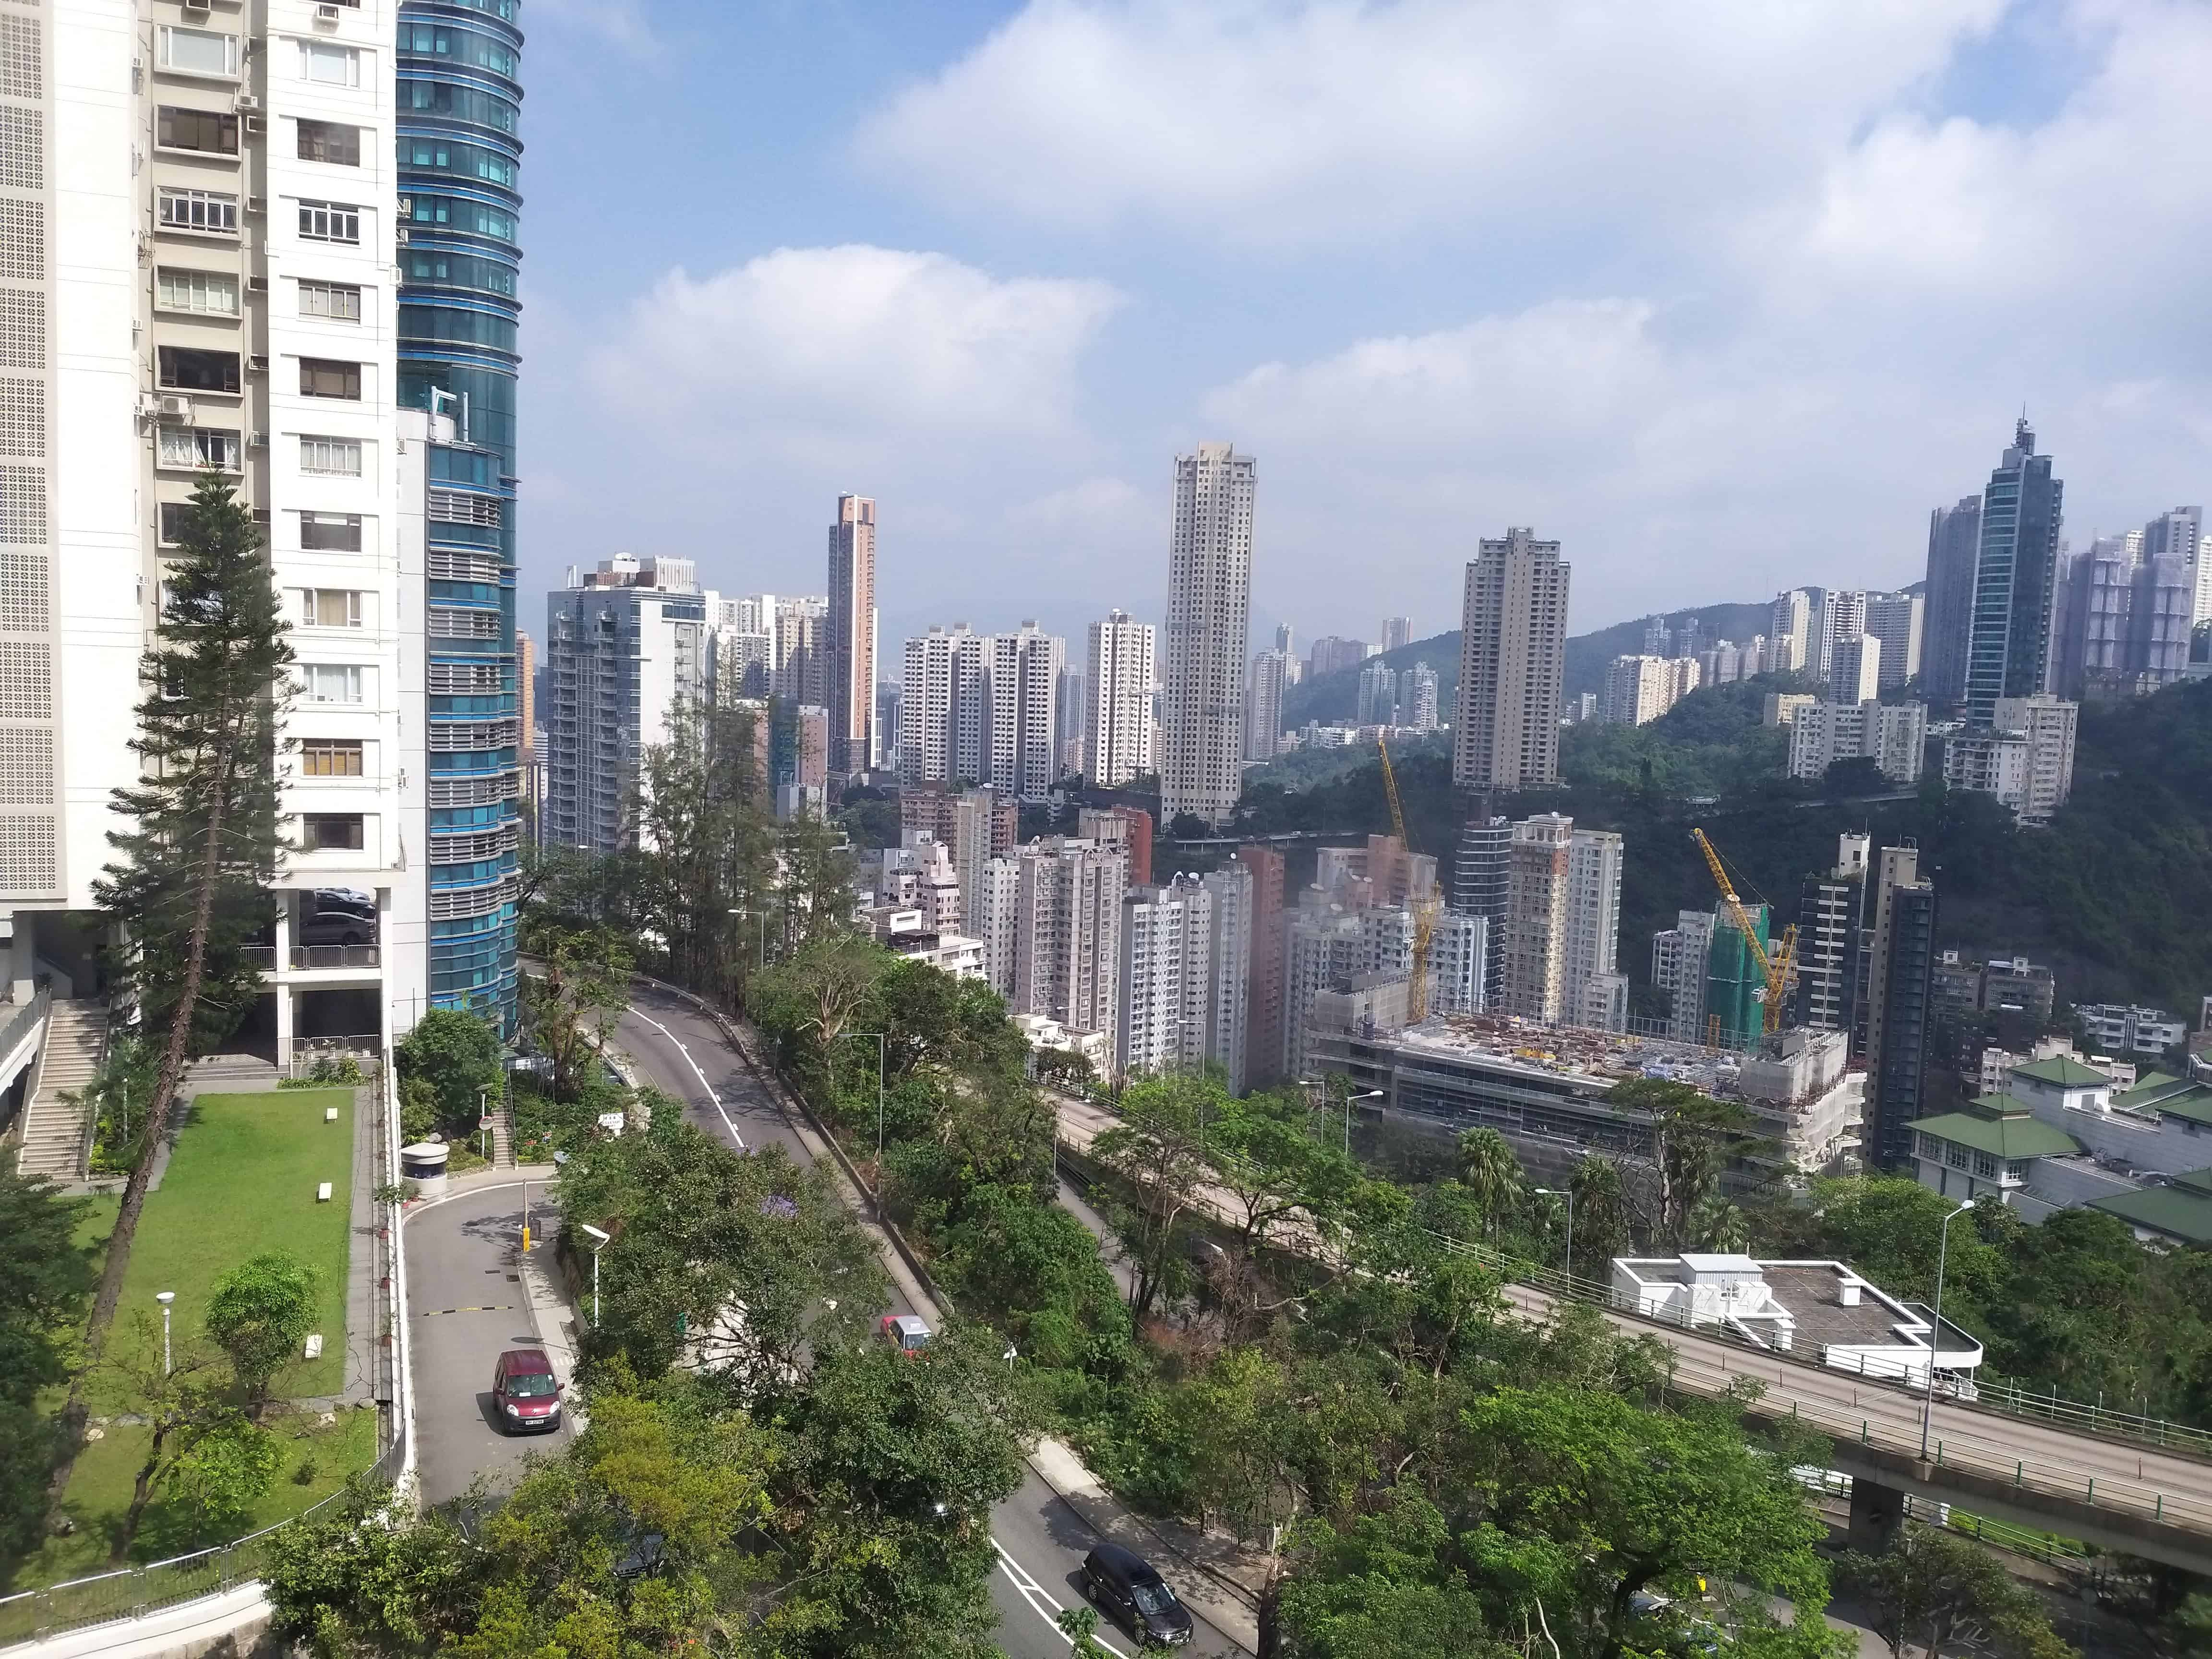 View from Hong Kong Adventist Hospital